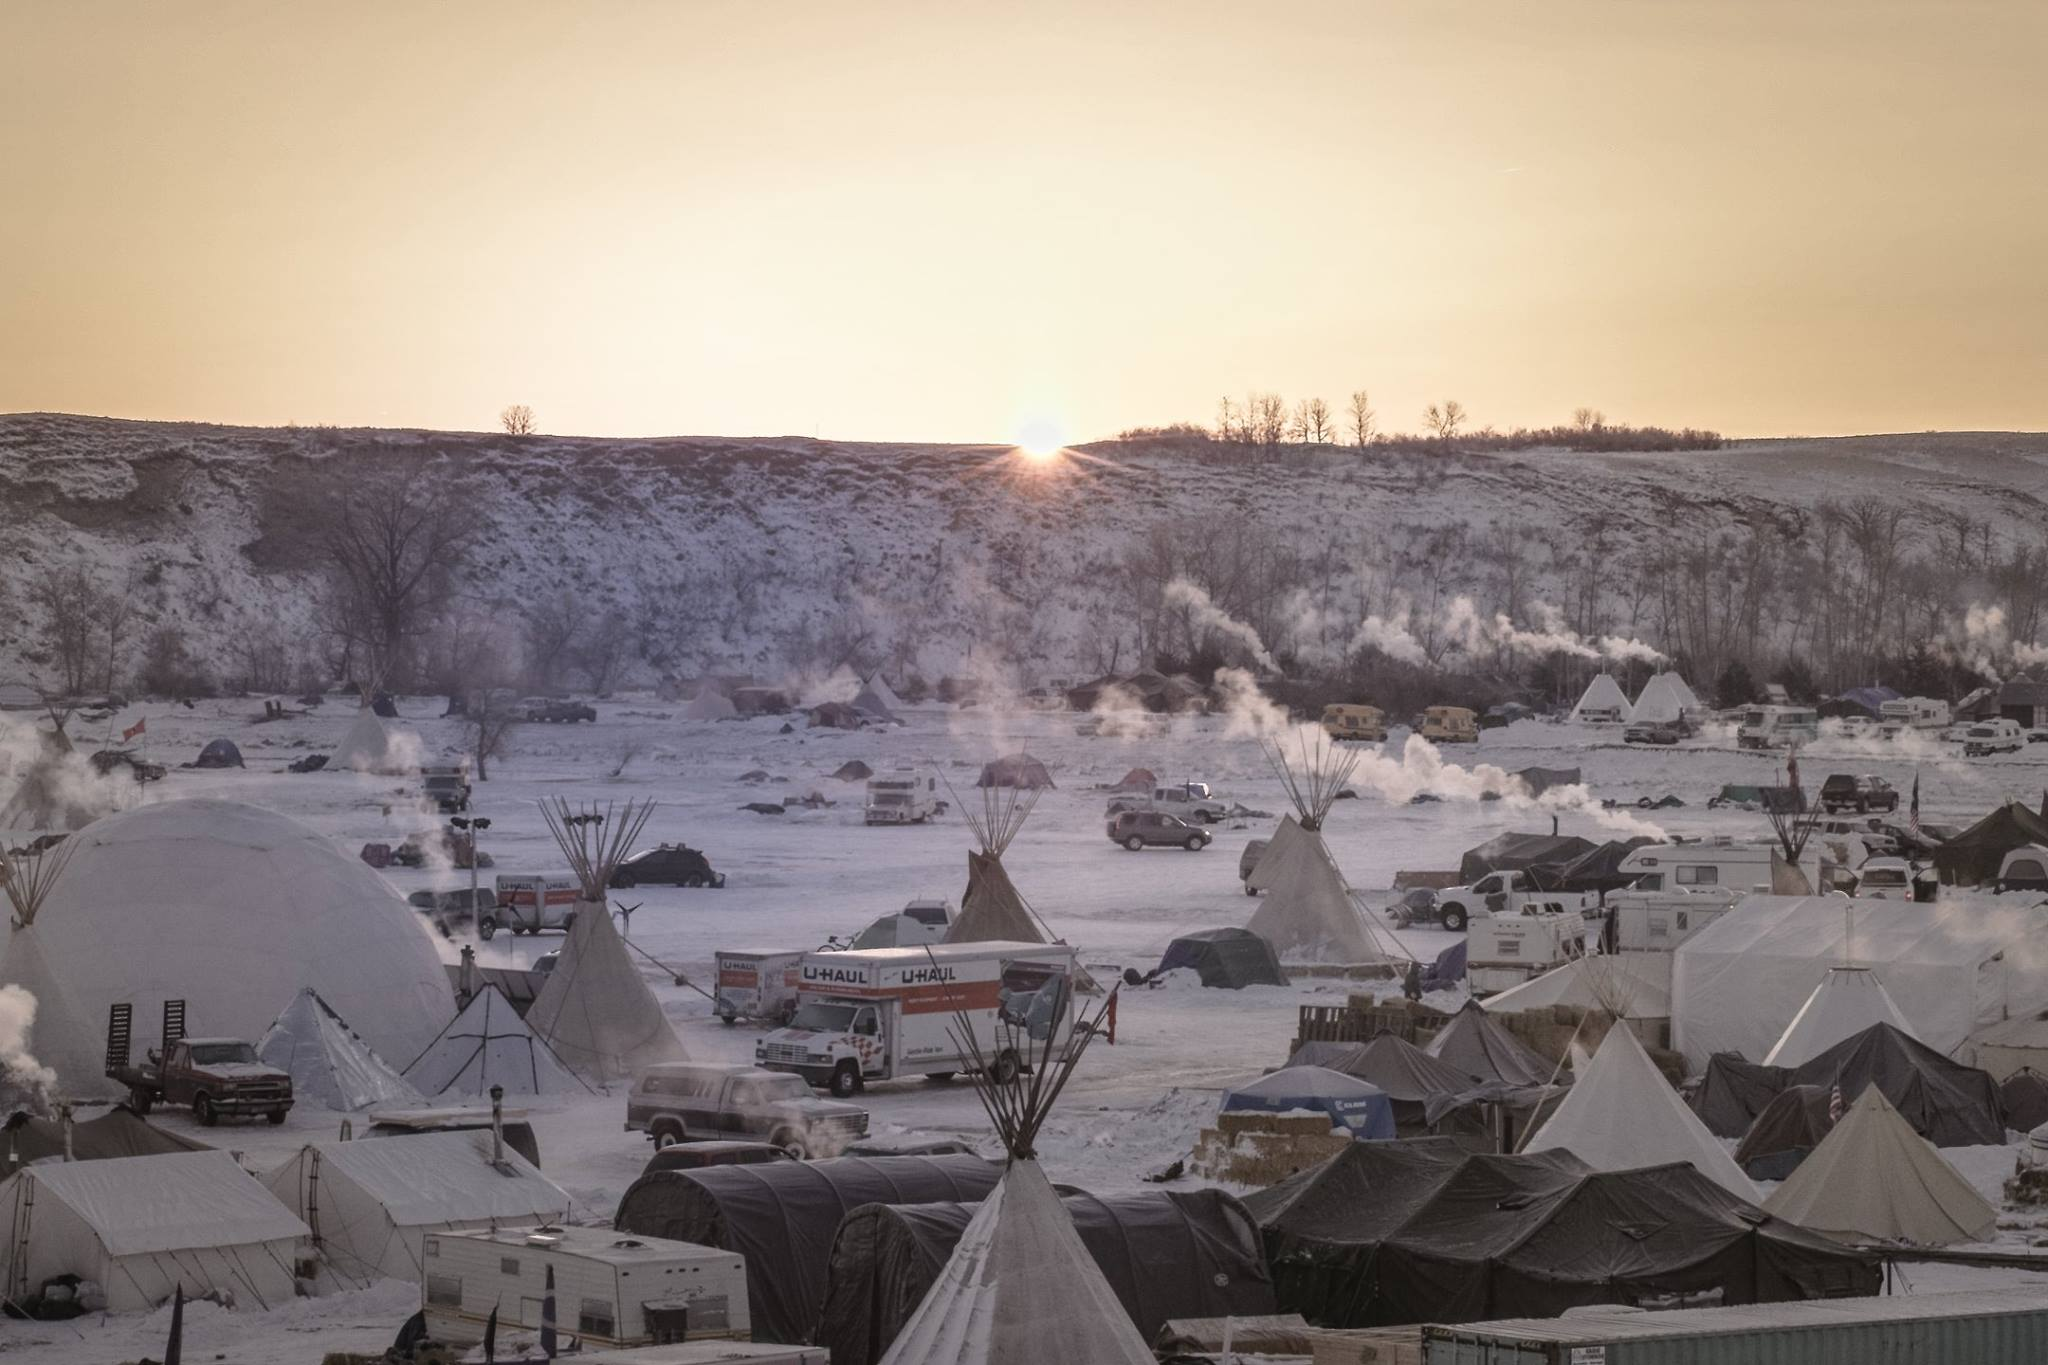 Jenni Giovannetti: The war against Dakota Access is far from over